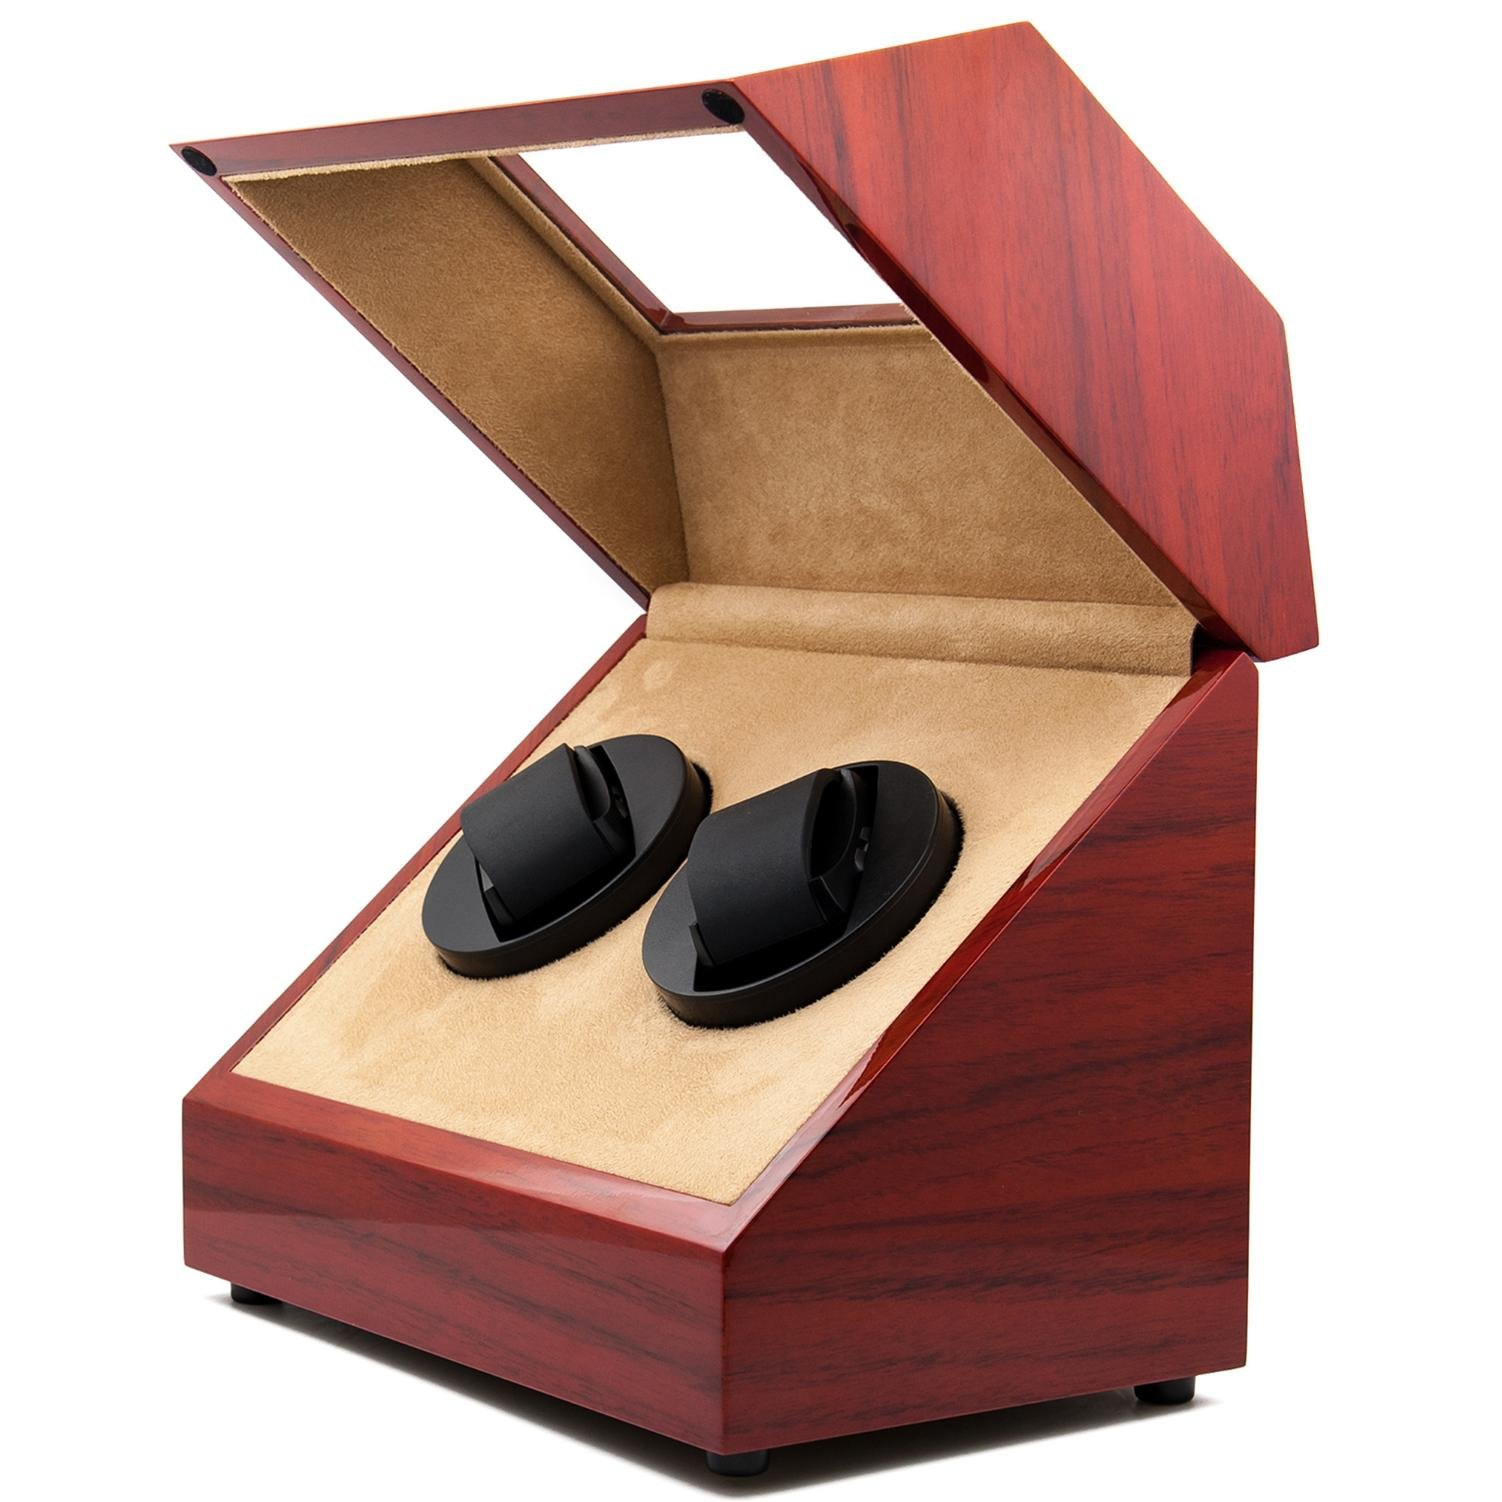 KAIHE-BOX Classic Watch Winders for 2 Watches for automatic Watch Winder Rotator Case Cover Storage(2 color,ww-02132) , Red by KAIHE-BOX (Image #1)